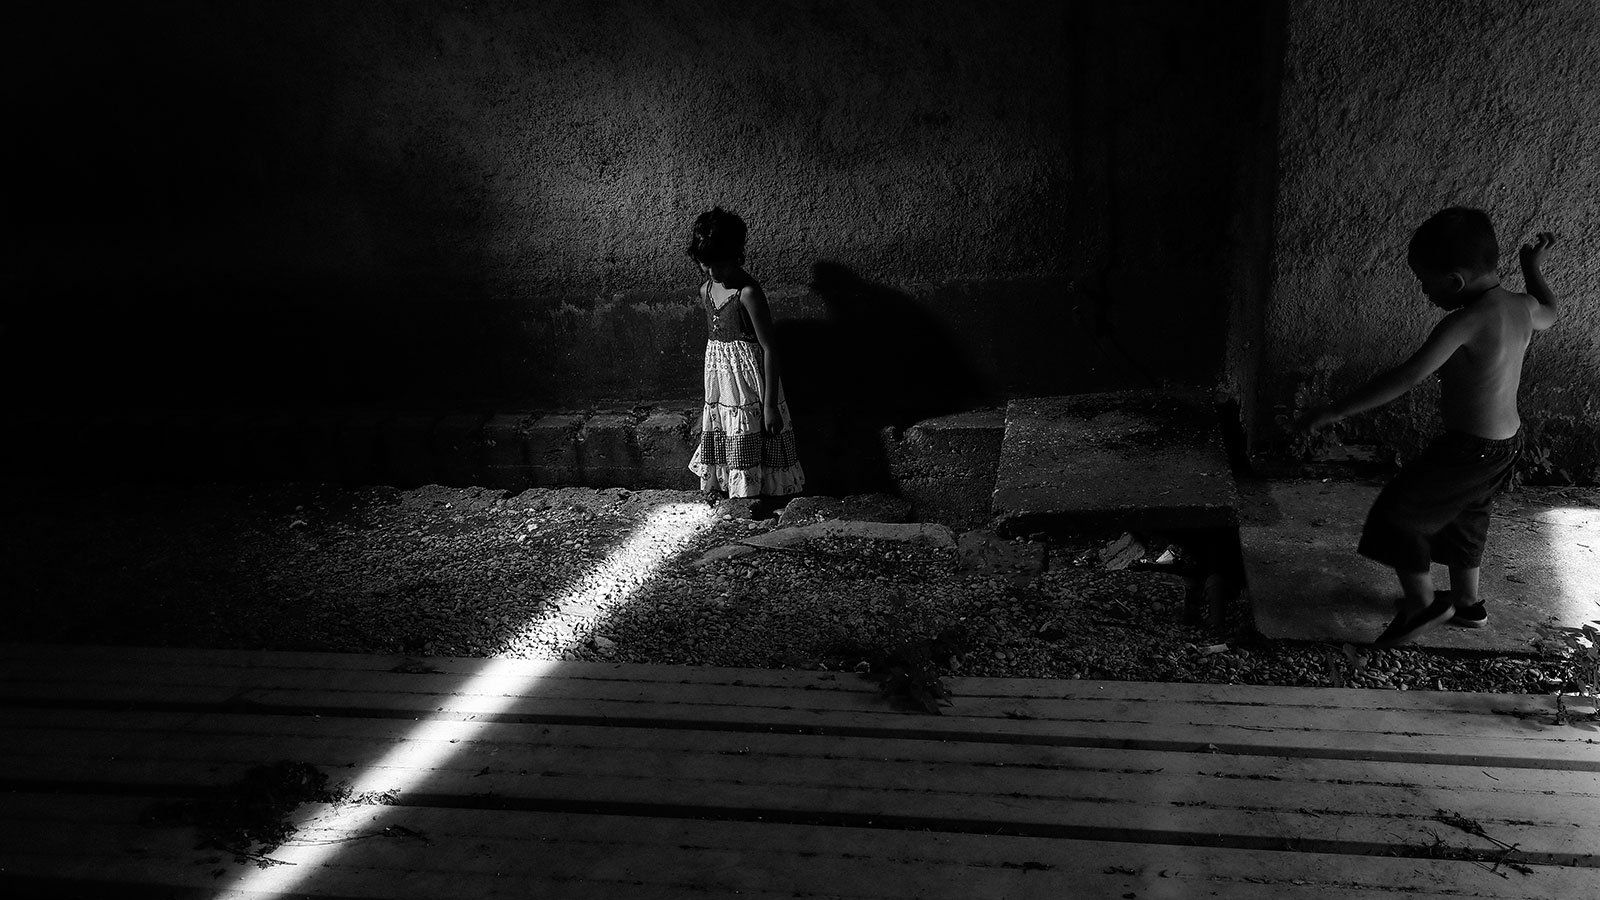 Young gypsy child stands in a shaft of light